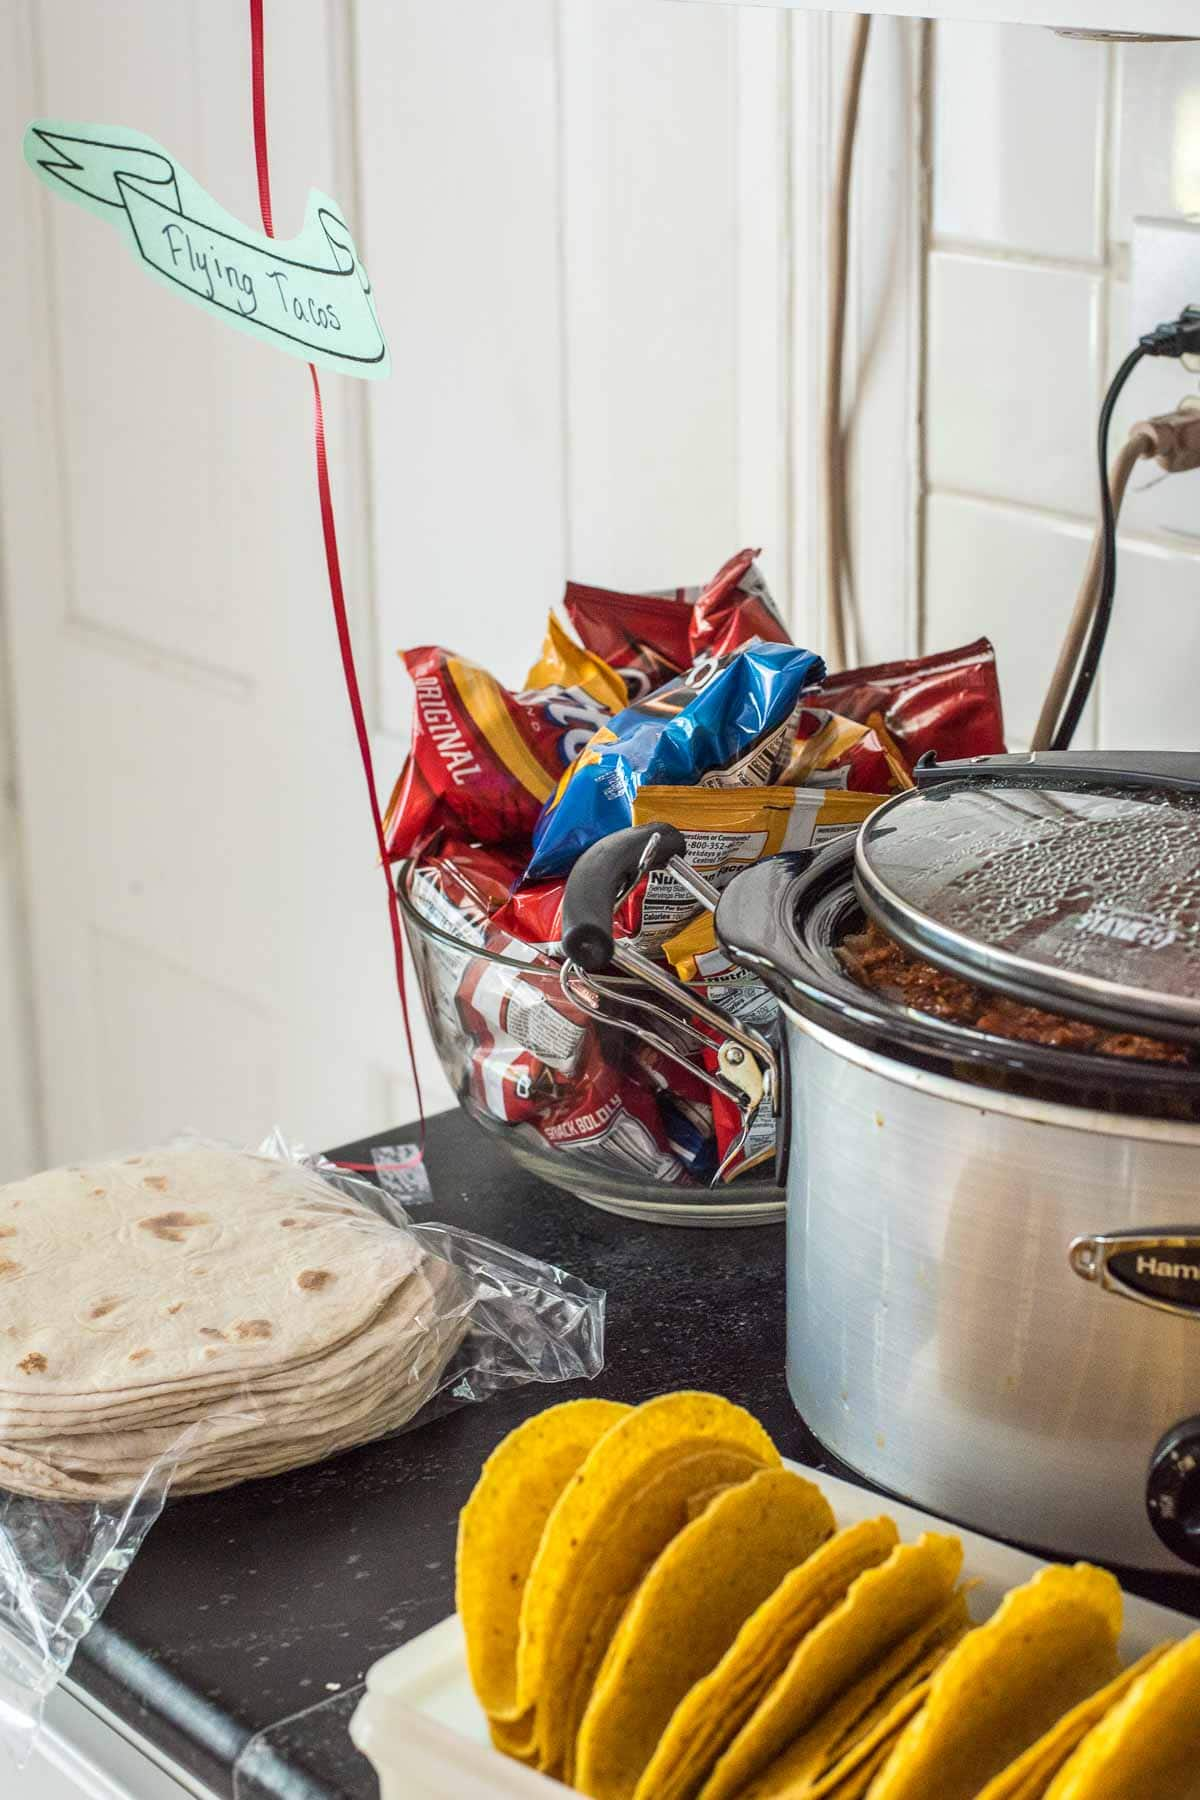 Flying Tacos were the perfect food to serve at our airplane themed birthday party!